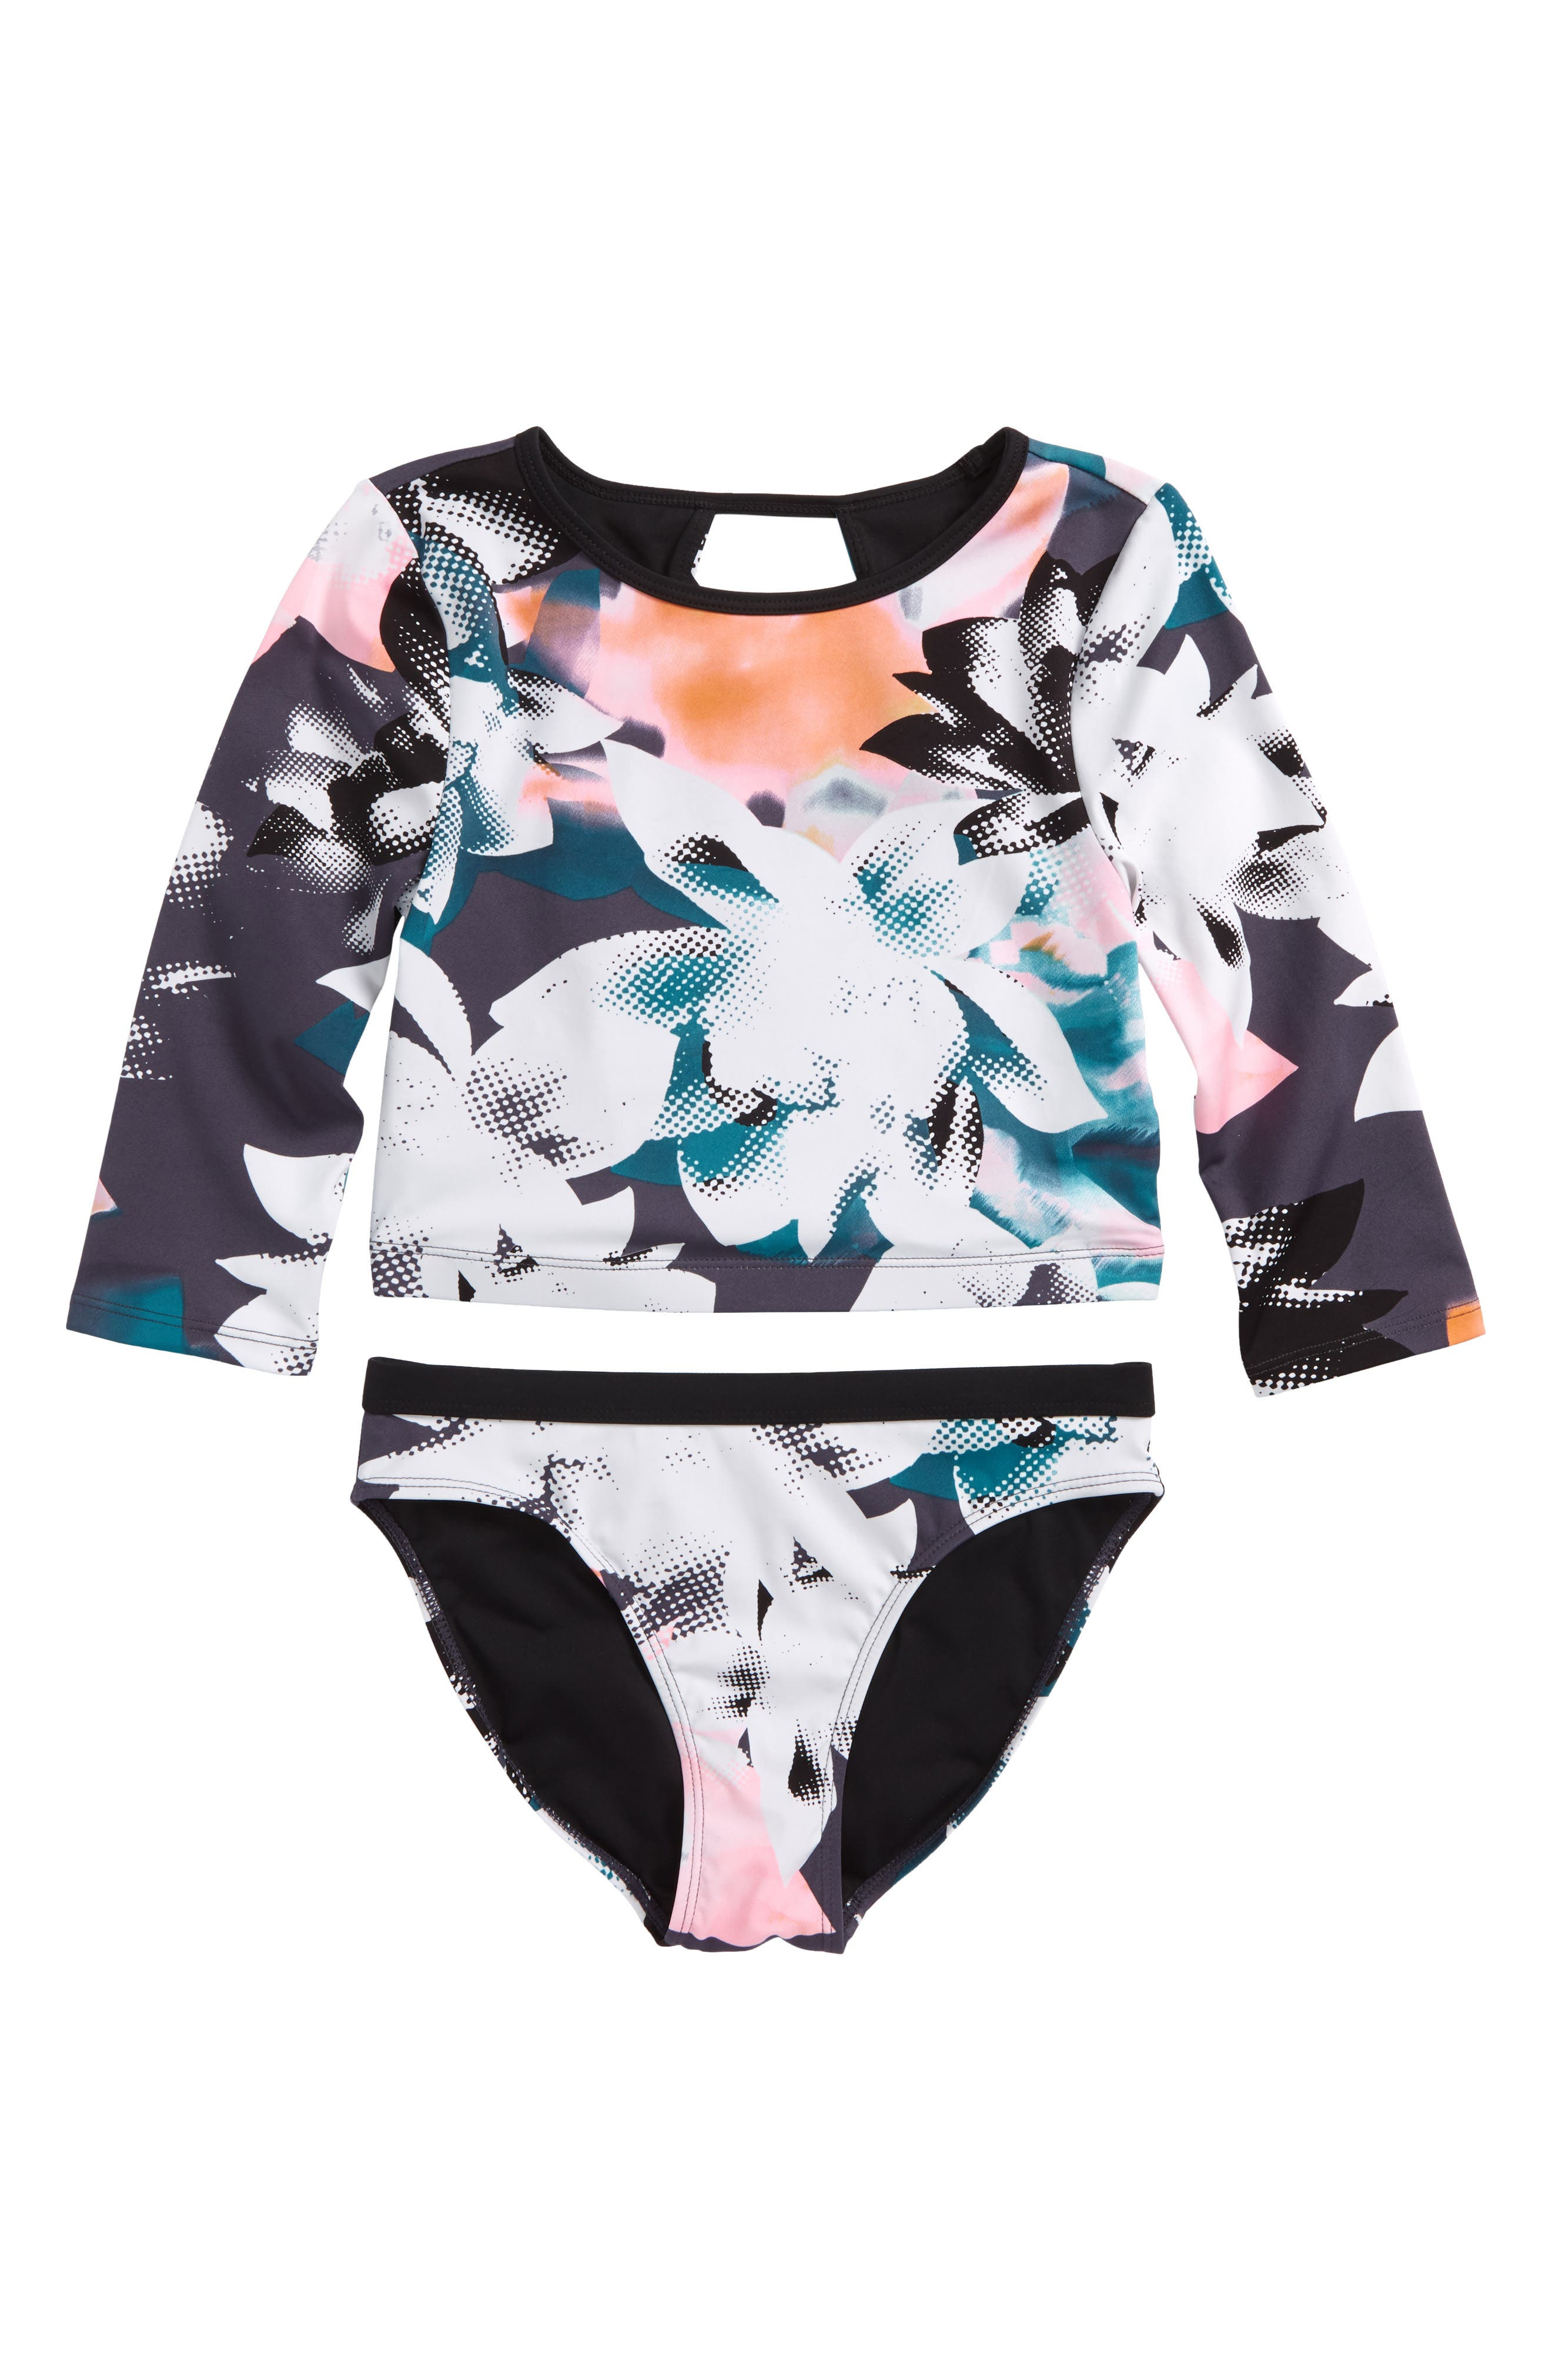 ZELLA GIRL, Scoop Two-Piece Rashguard Swimsuit, Main thumbnail 1, color, 001